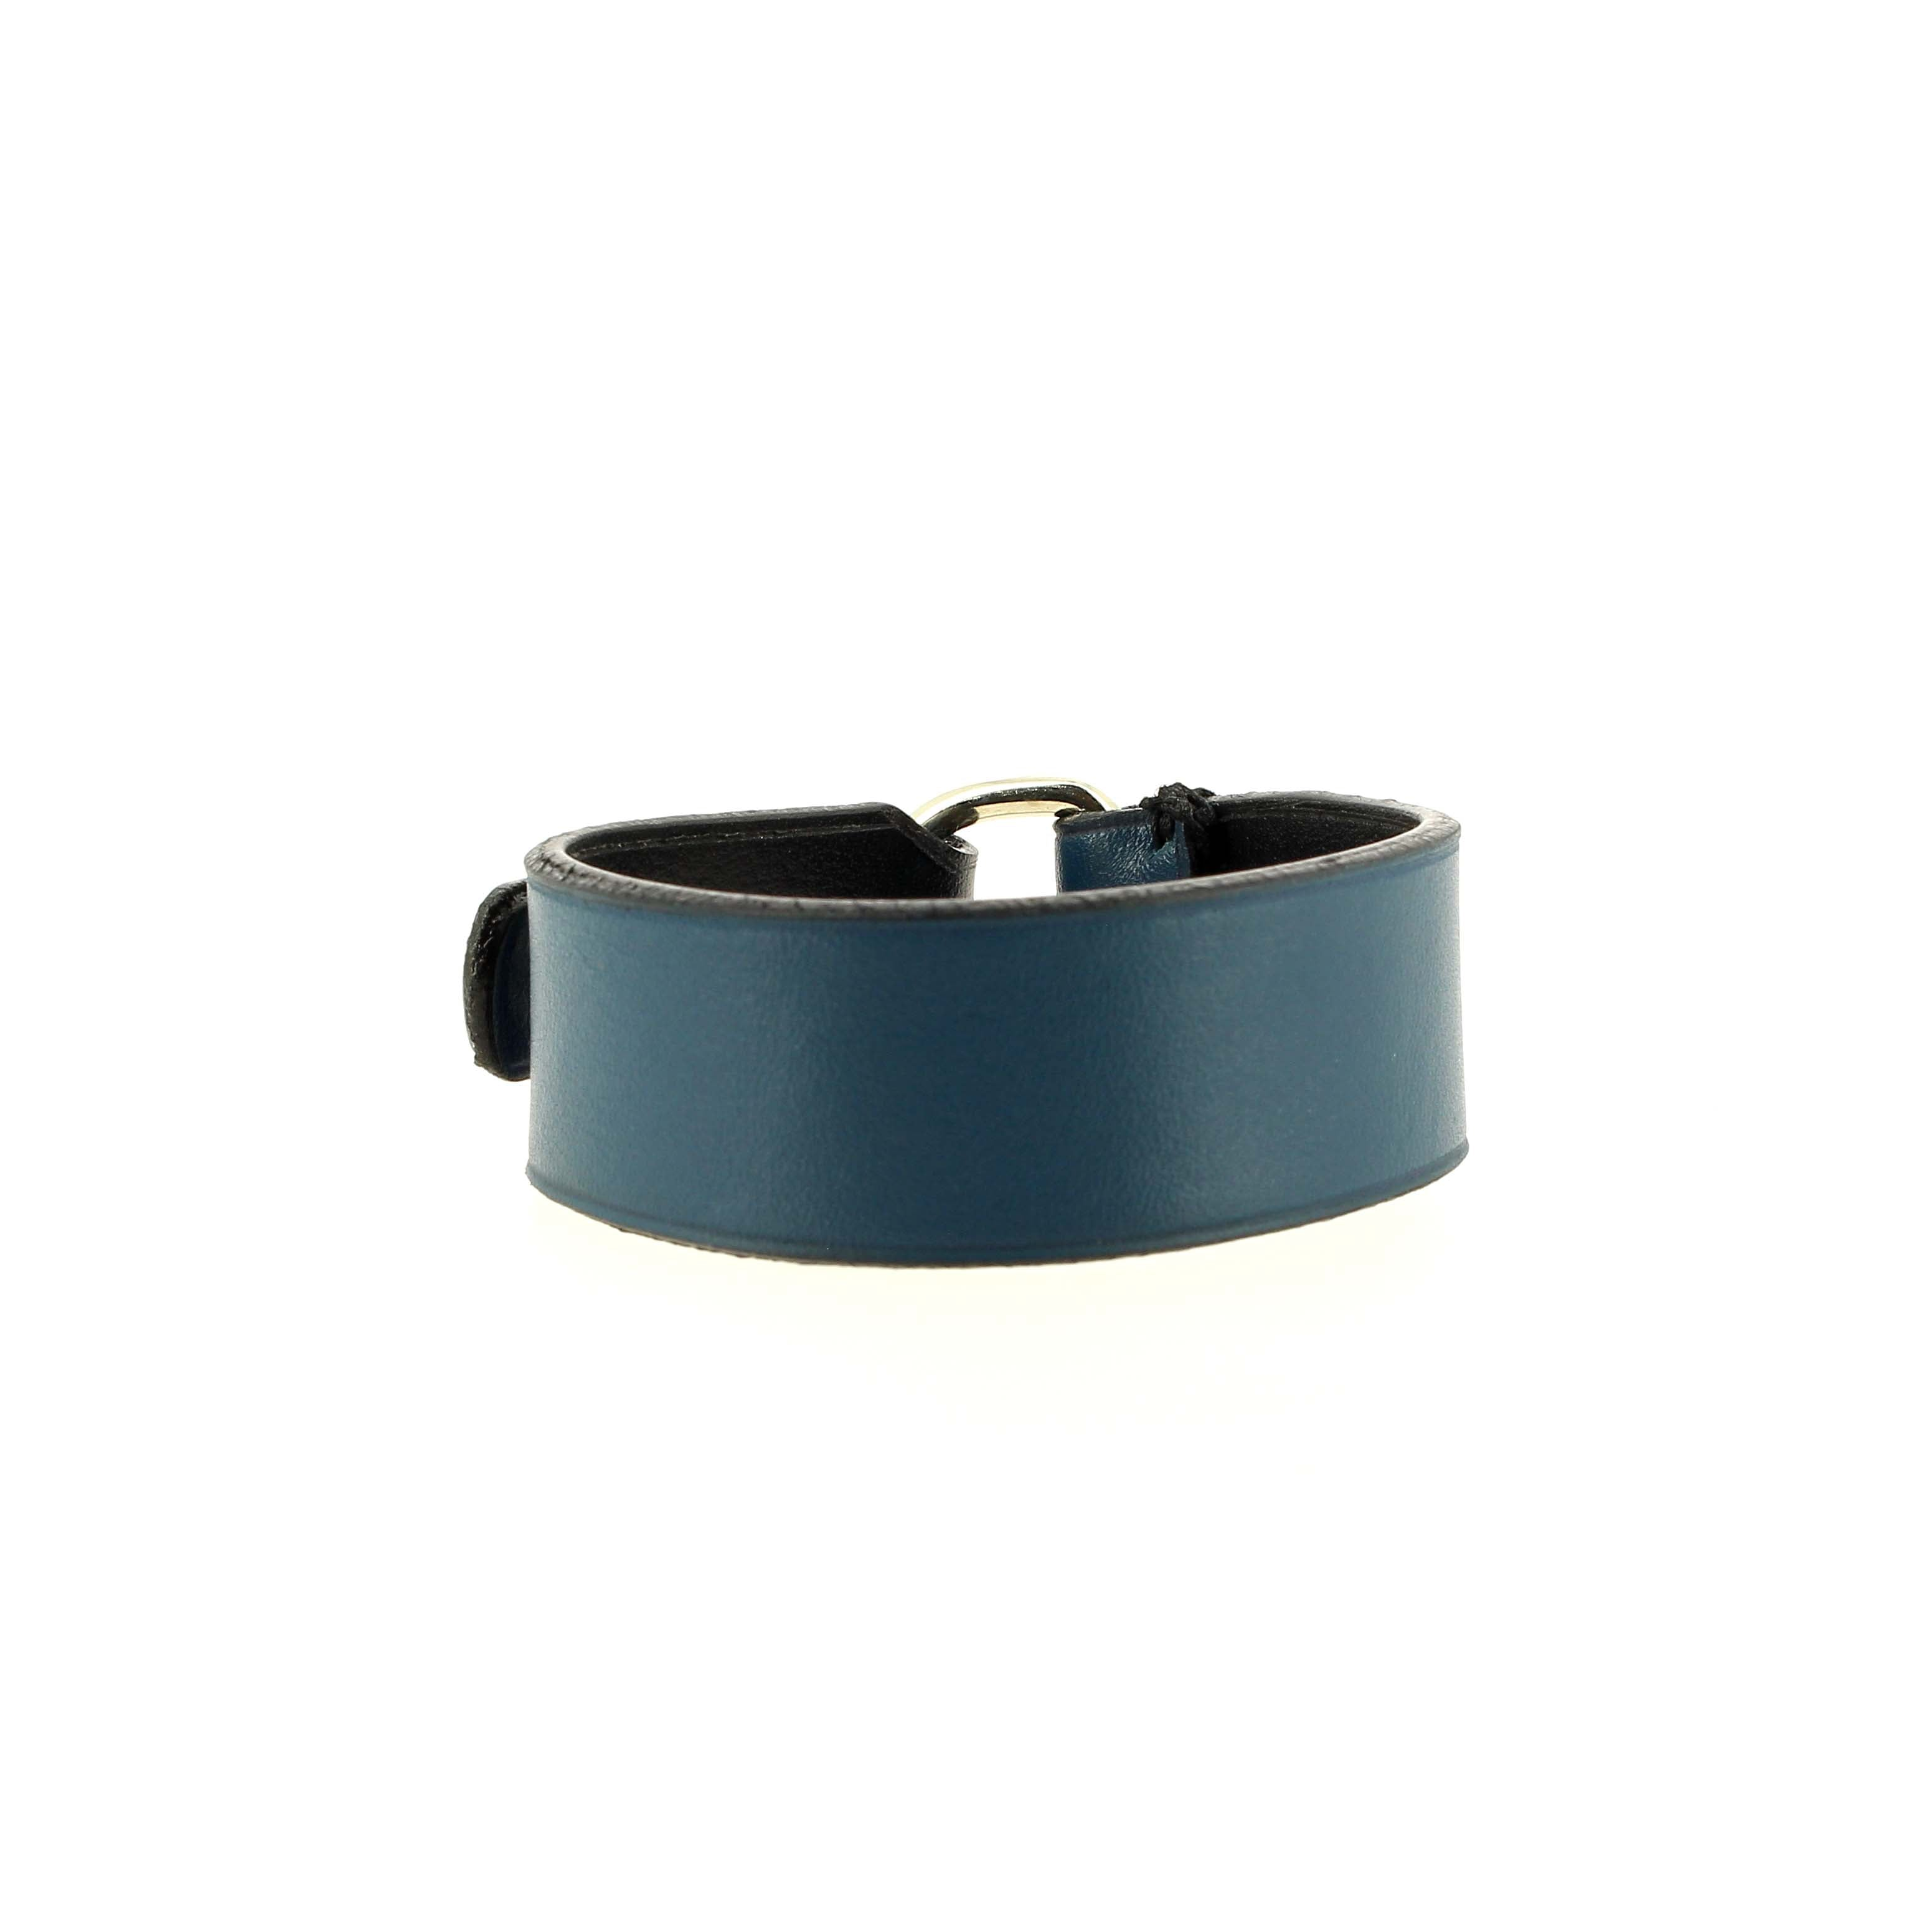 Bracelet Bad Reputation bleu en cuir fait main